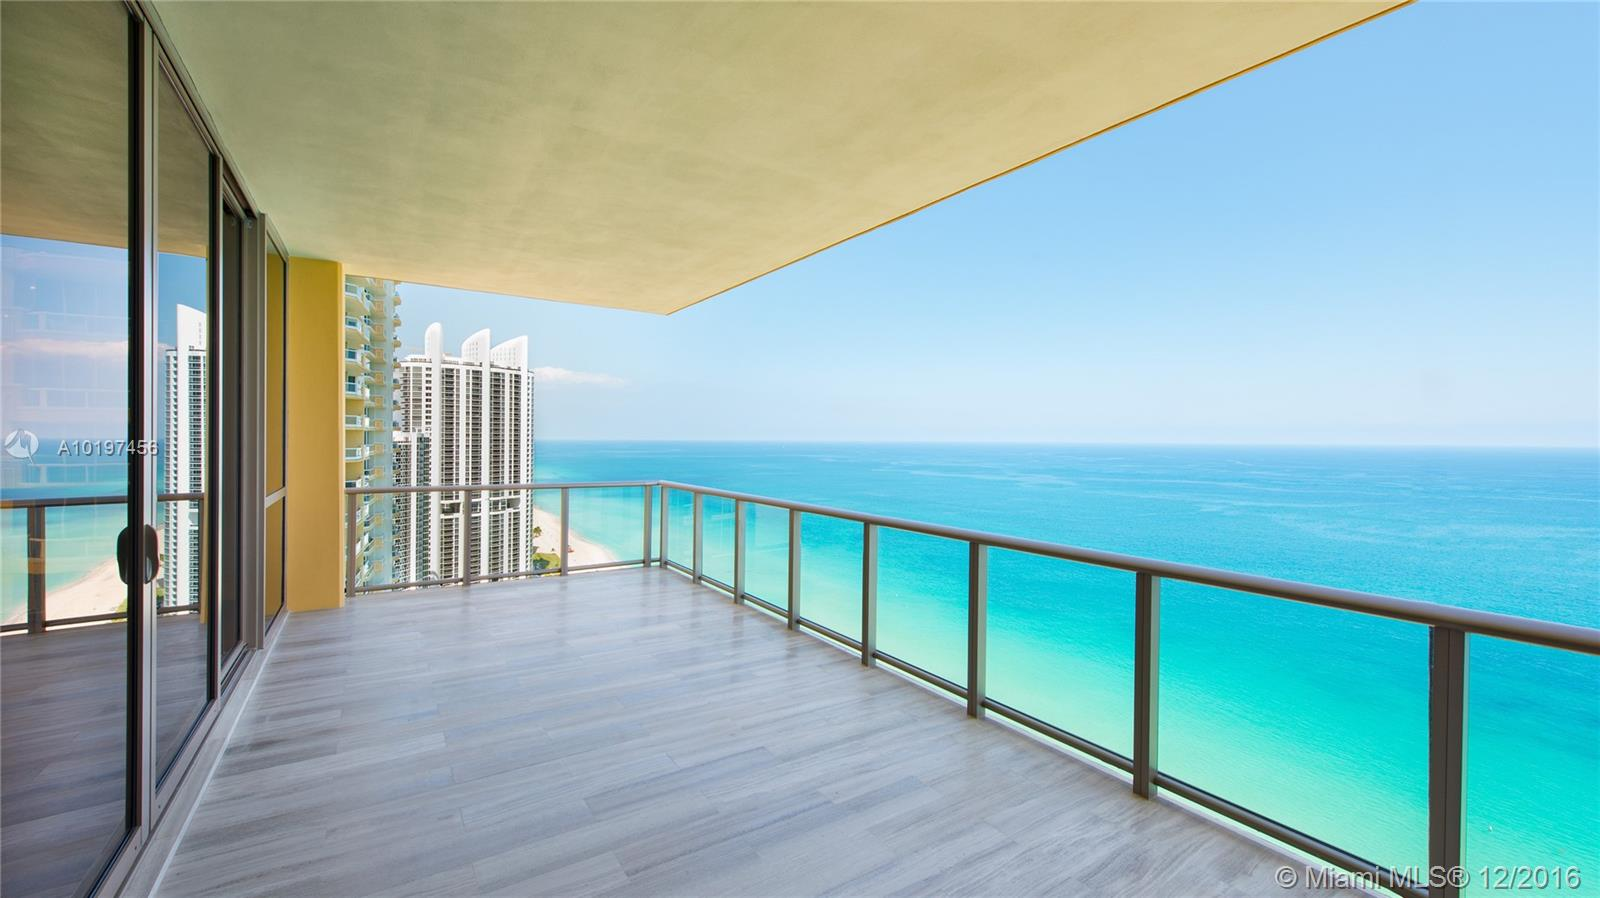 17749  Collins Ave #3001 For Sale A10197456, FL